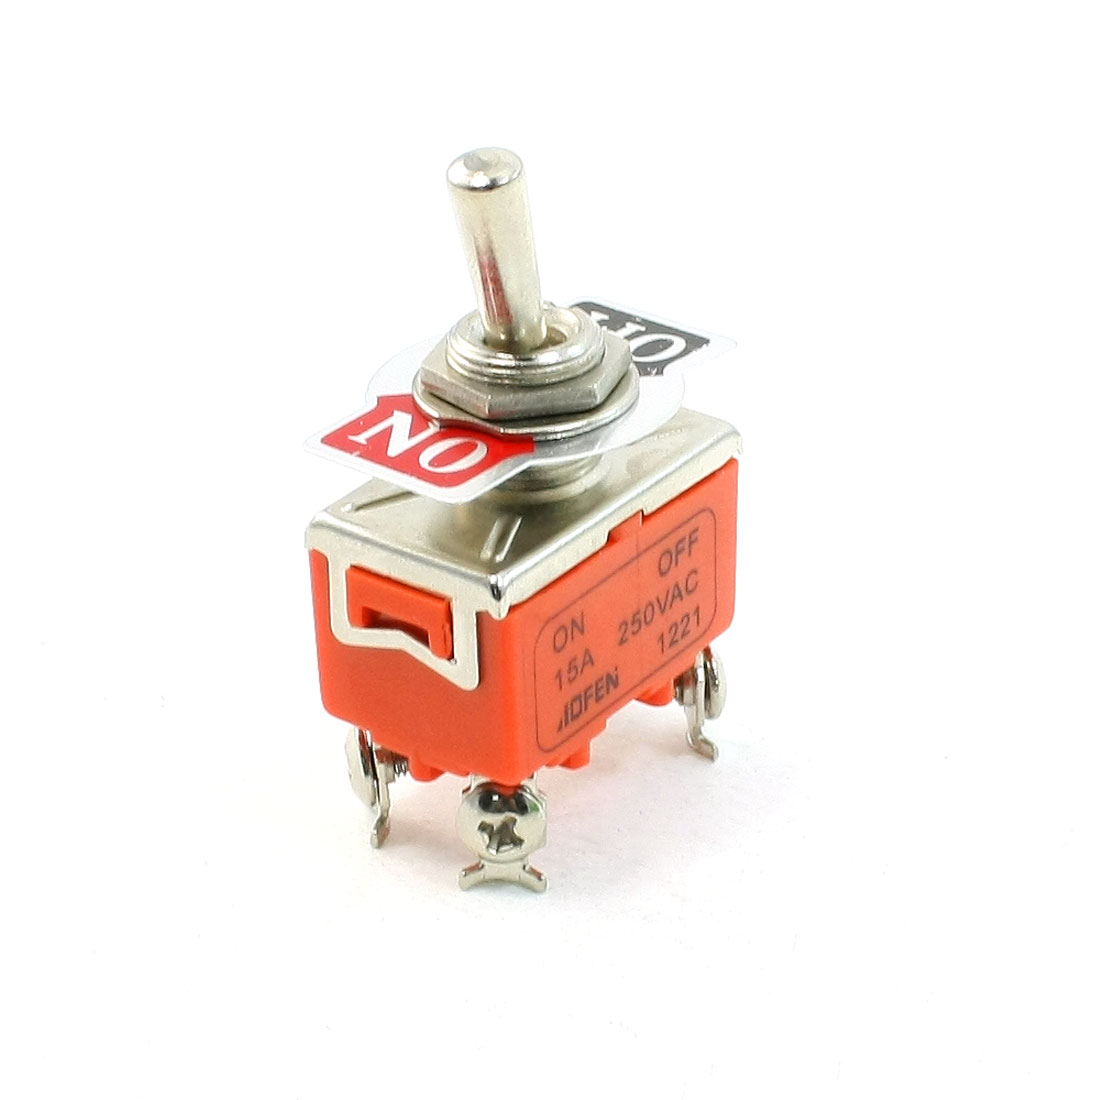 15A/250VAC ON/OFF 2 Position 4 Screw Terminals DPST Toggle Switch